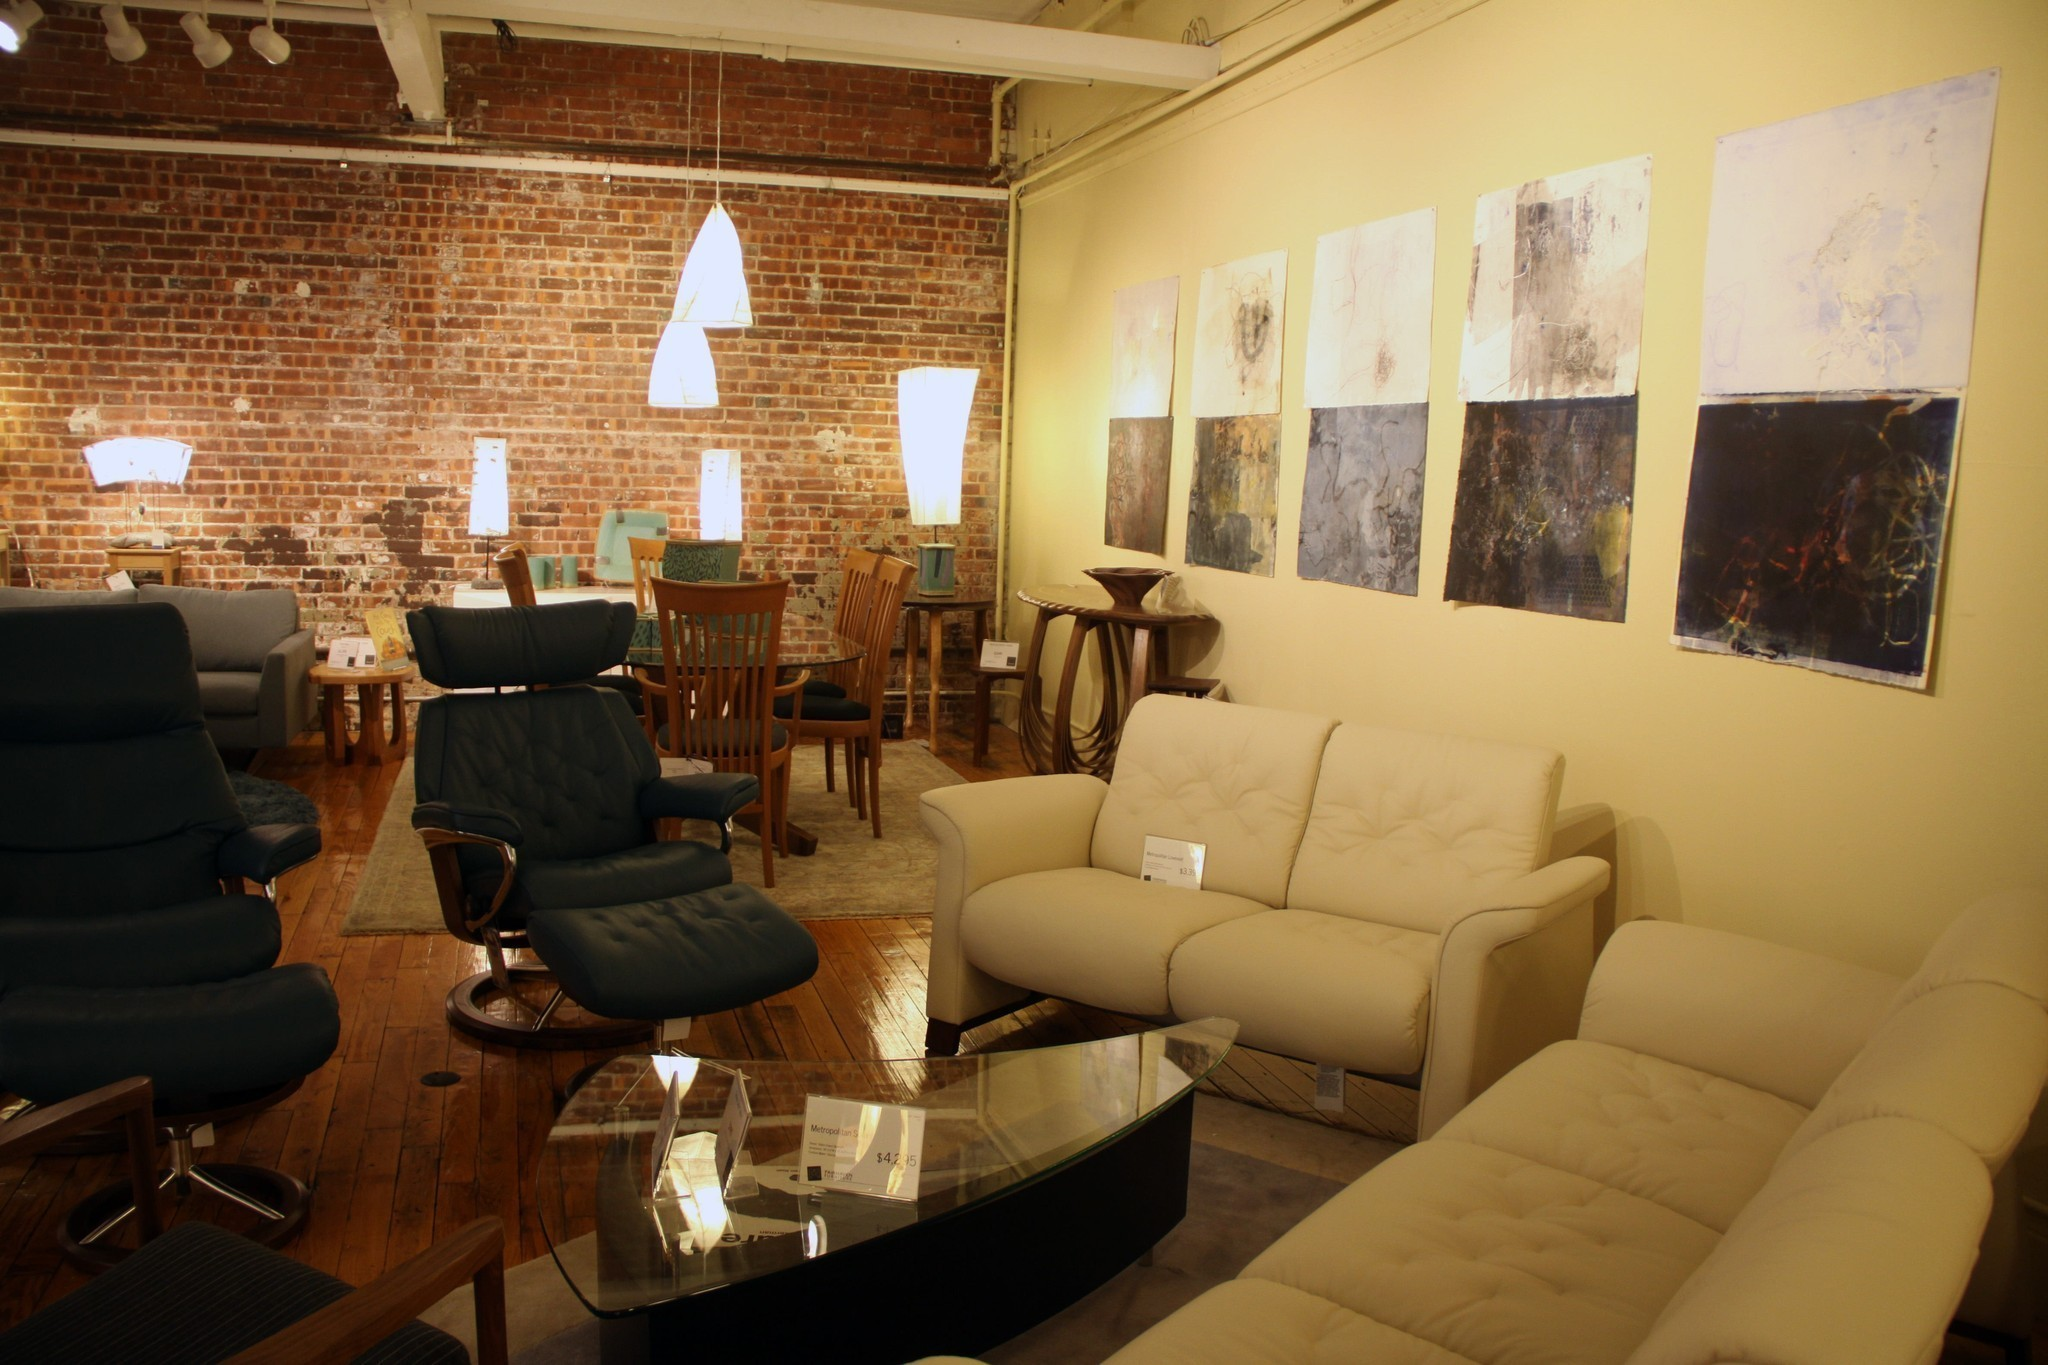 Good After 35 Years, An Alternative Furniture Retailer Spreading Eclectic  Culture   Hartford Courant